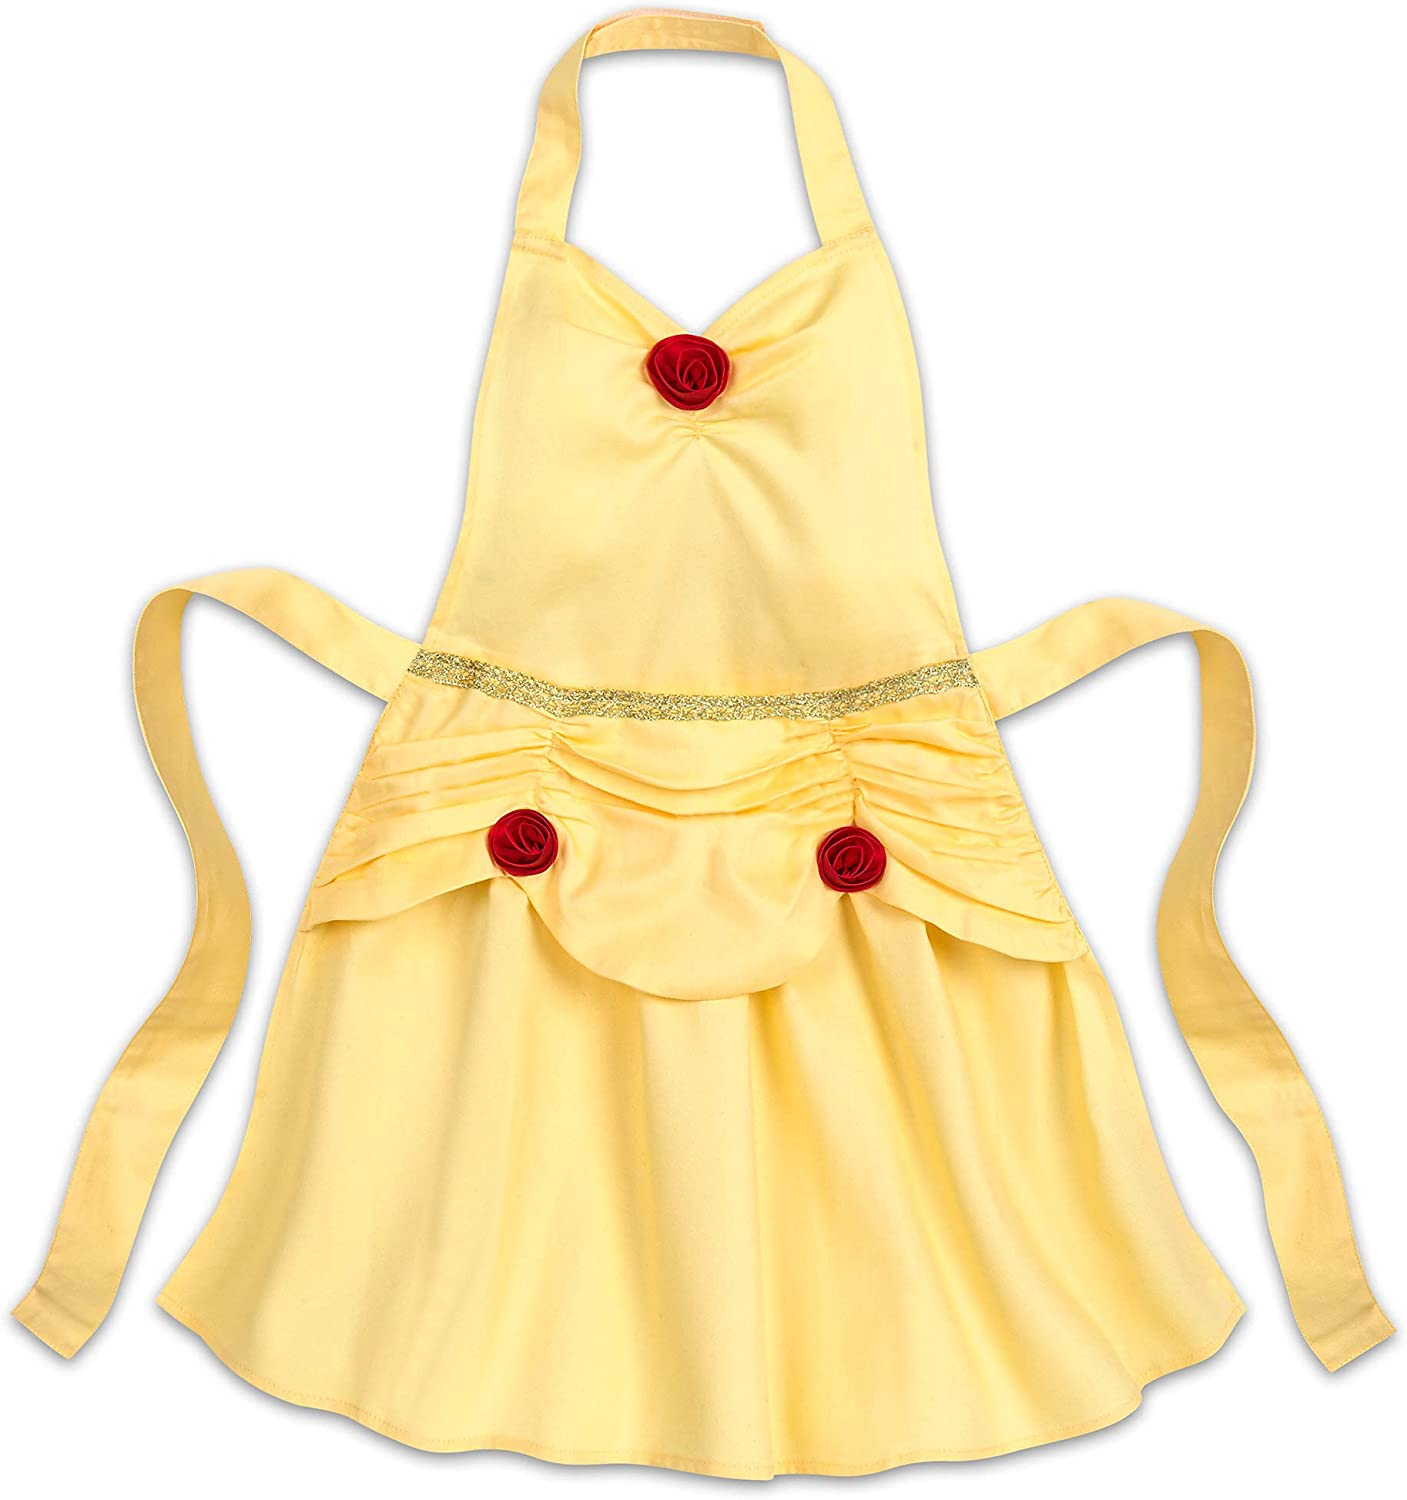 OFFICIAL DISNEY SNOW WHITE DRESS KITCHEN CHEF APRON IN A  GIFT TUBE NEW